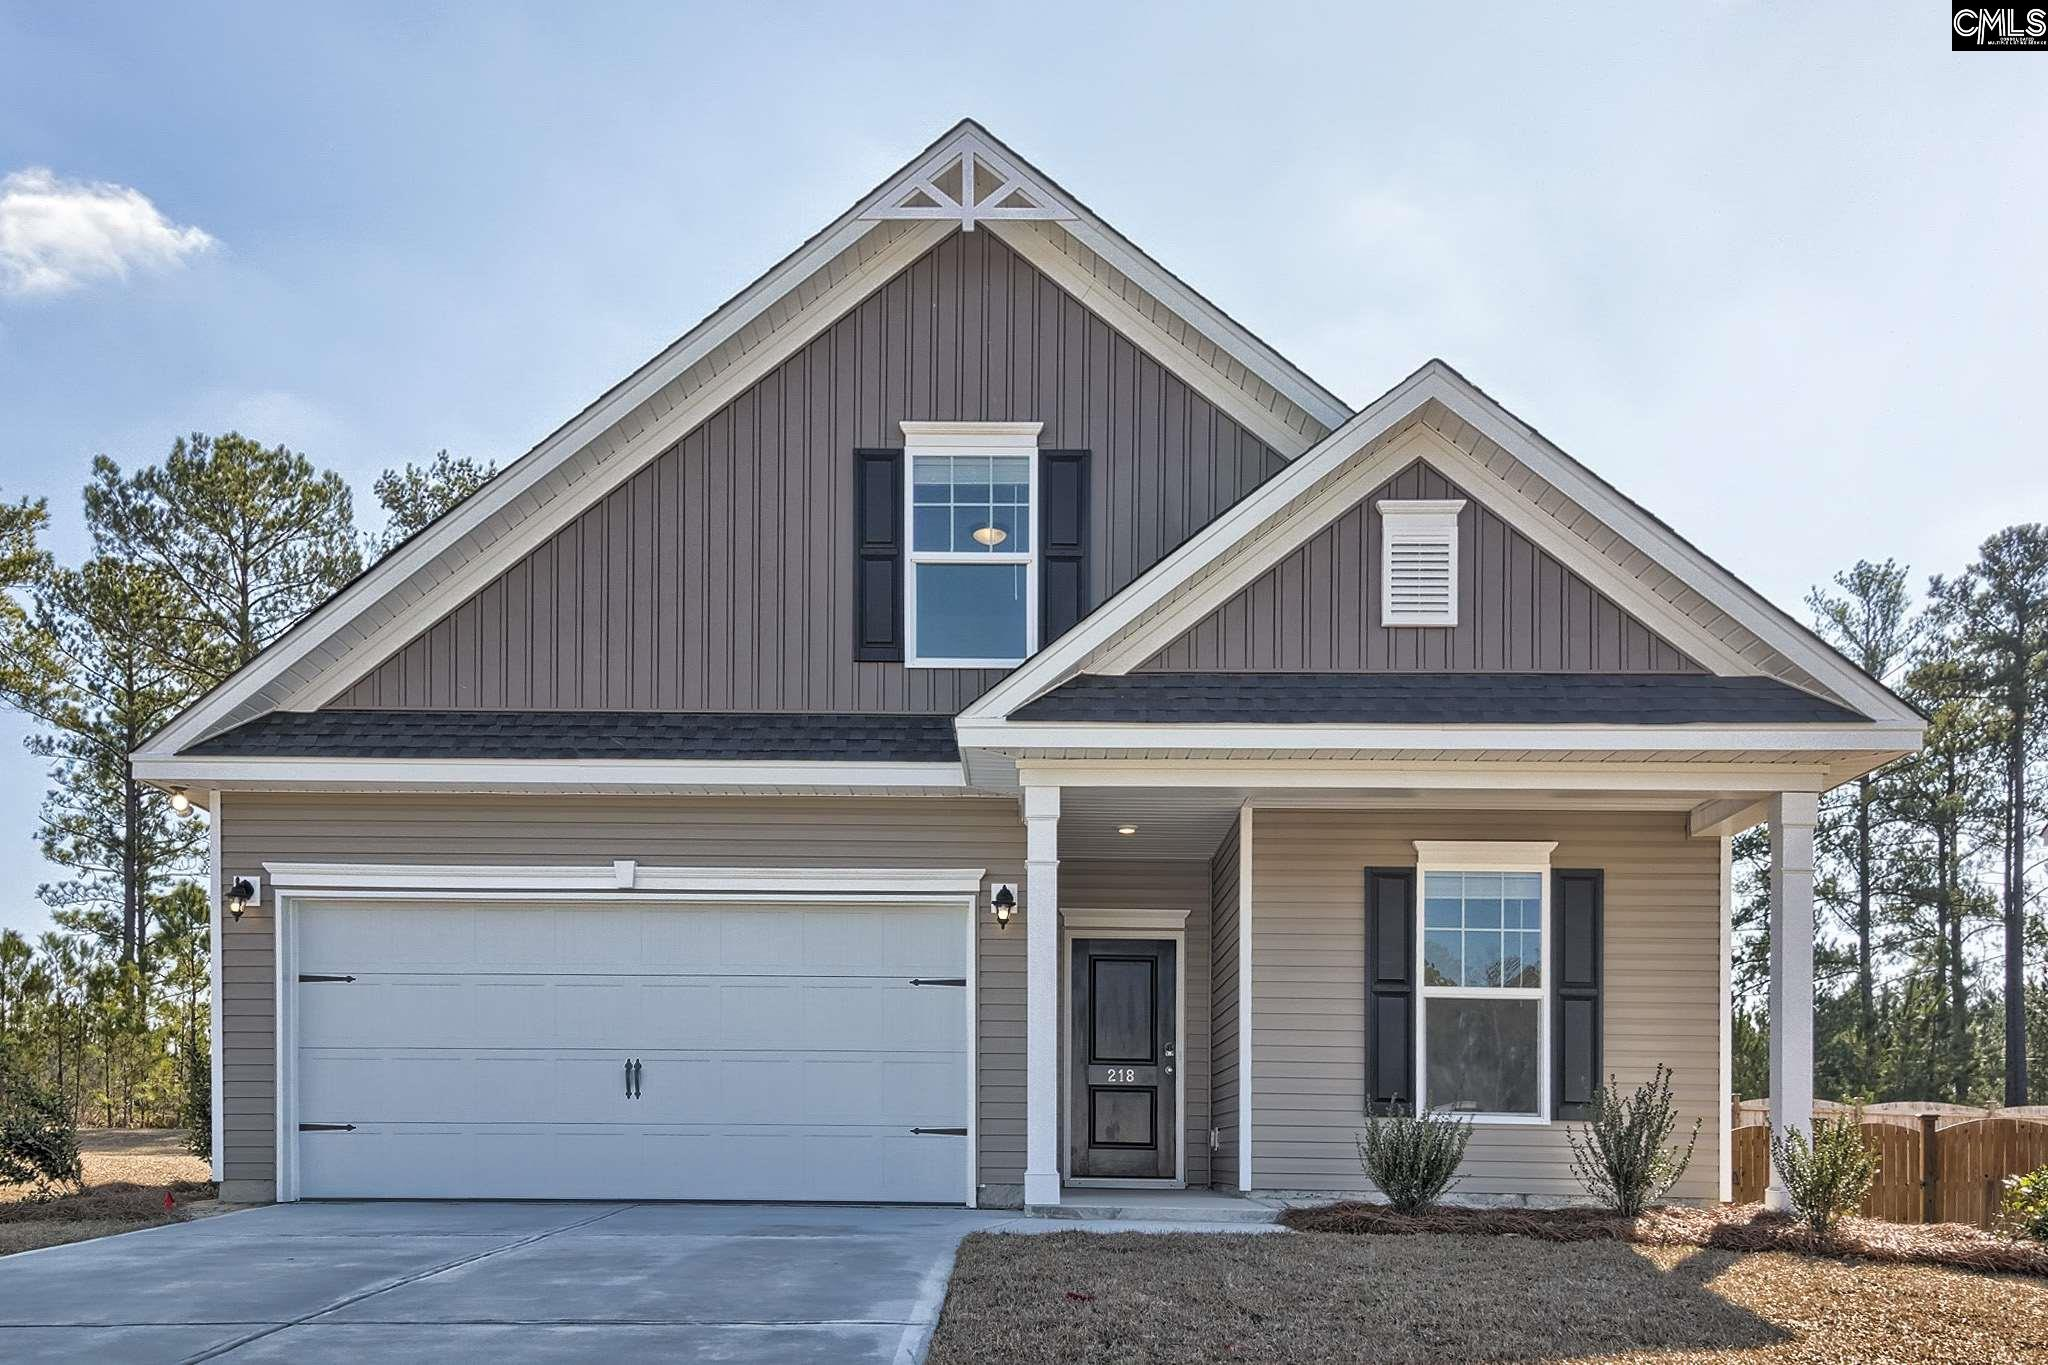 218 Turnfield West Columbia, SC 29170